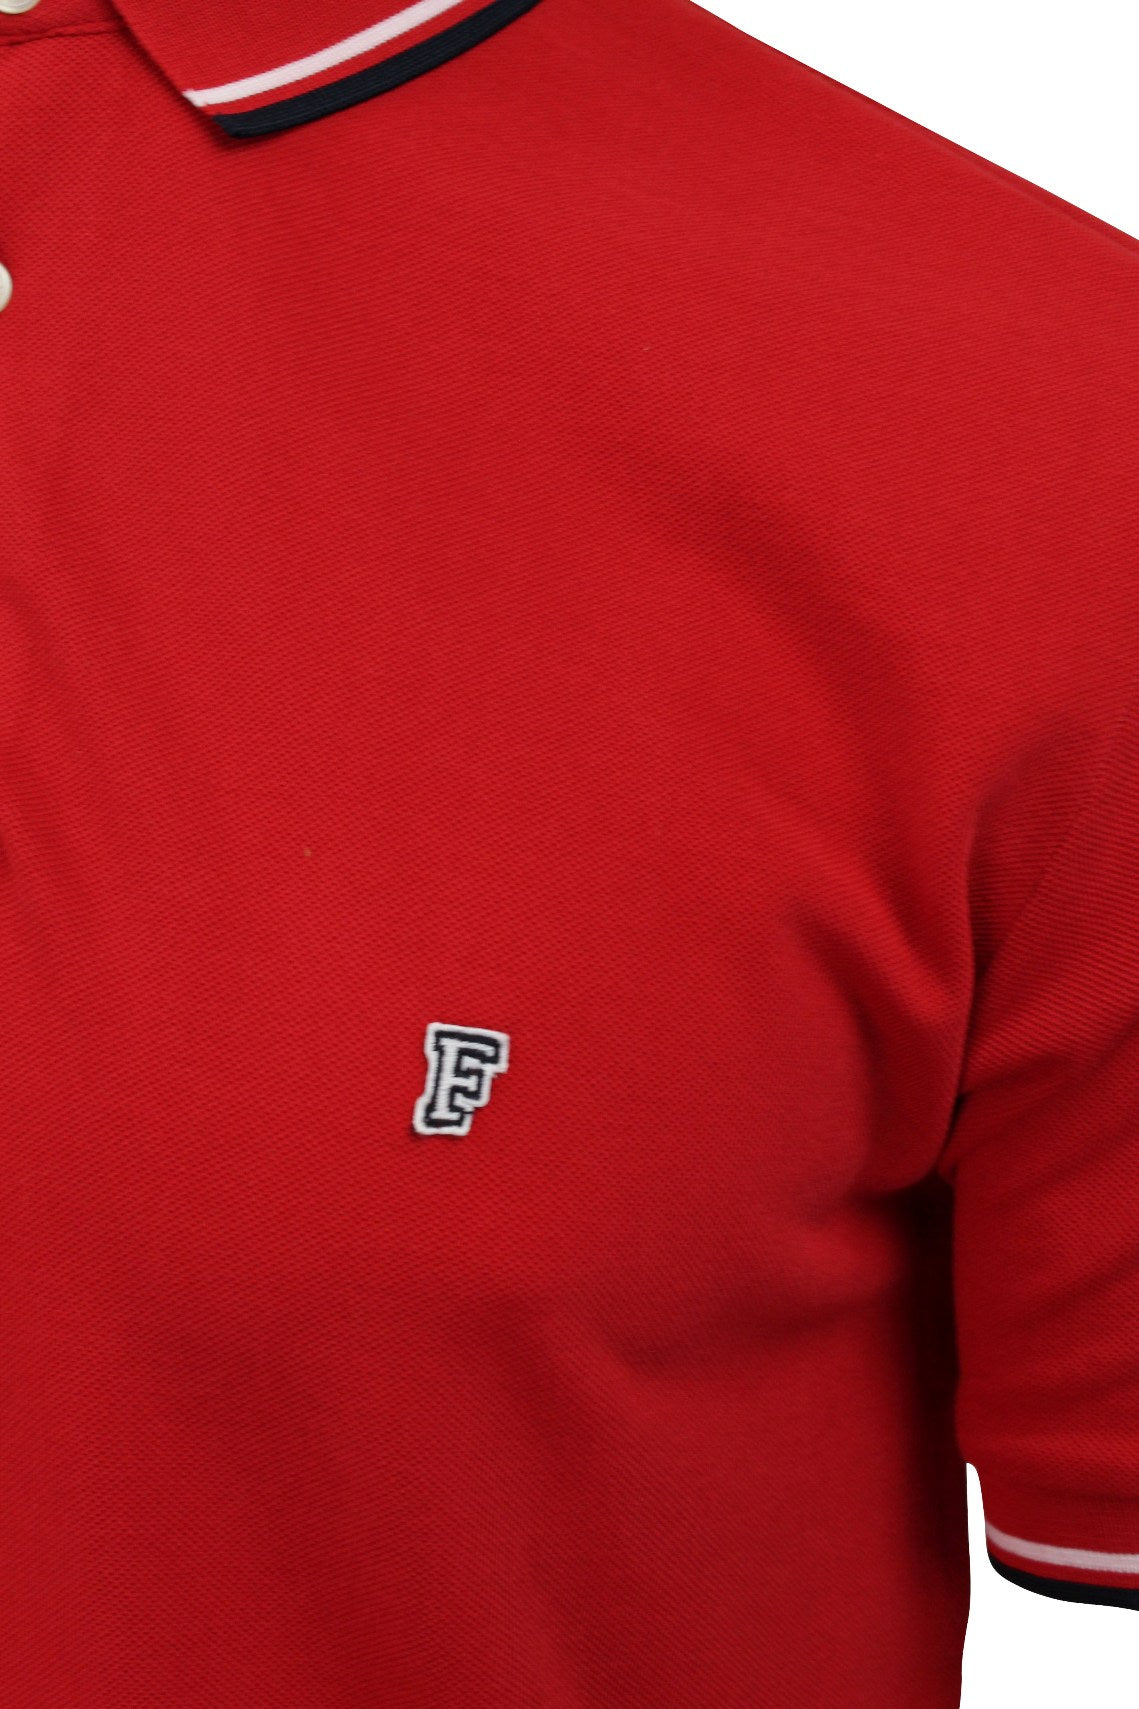 Mens Pique Polo T-Shirt by FCUK/French Connection 'F' Logo Twin Tipped-2